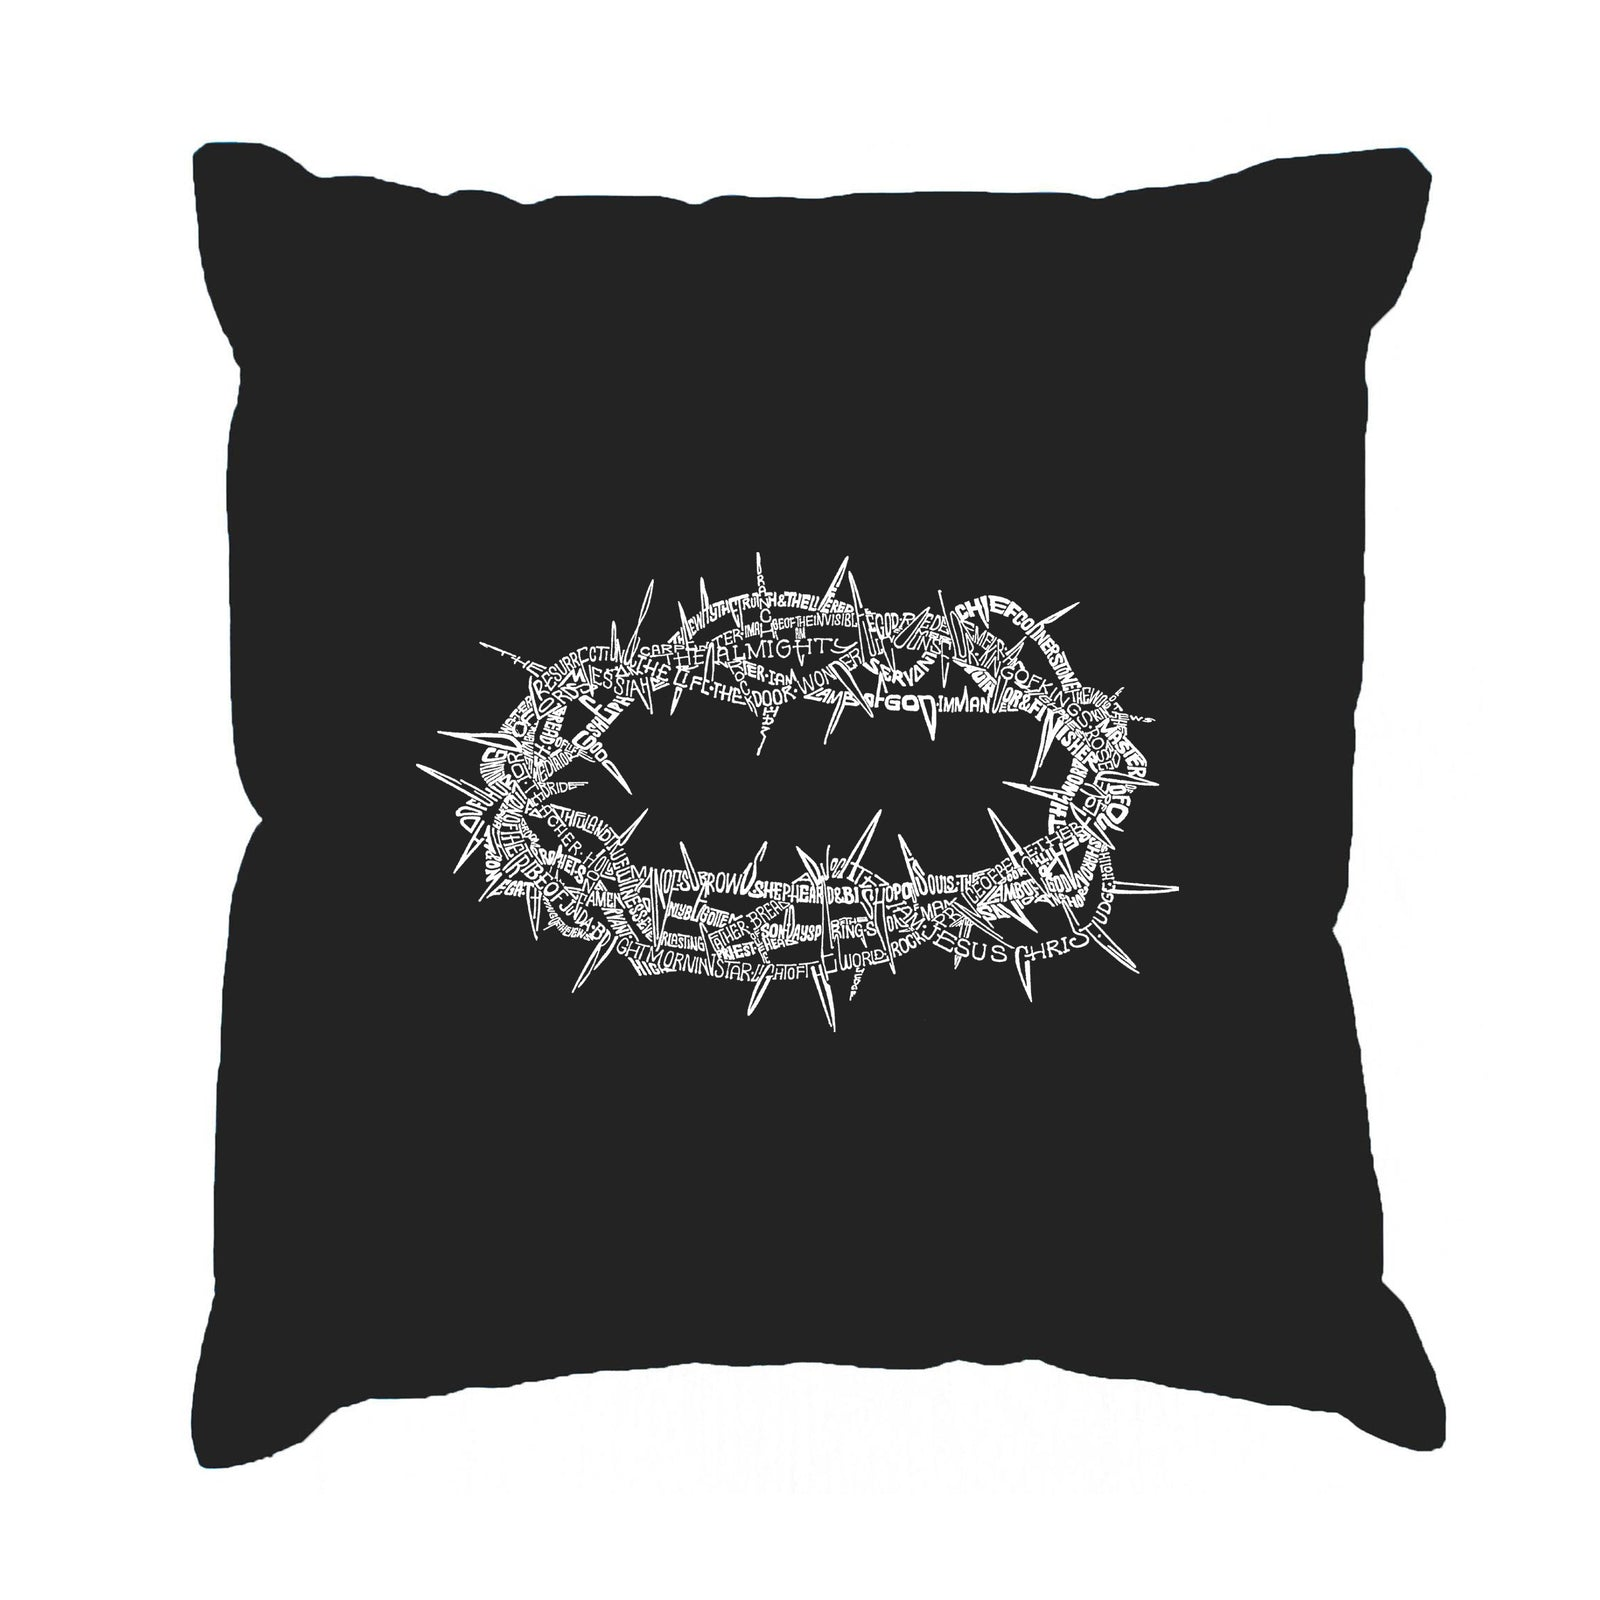 Throw Pillow Cover - CROWN OF THORNS